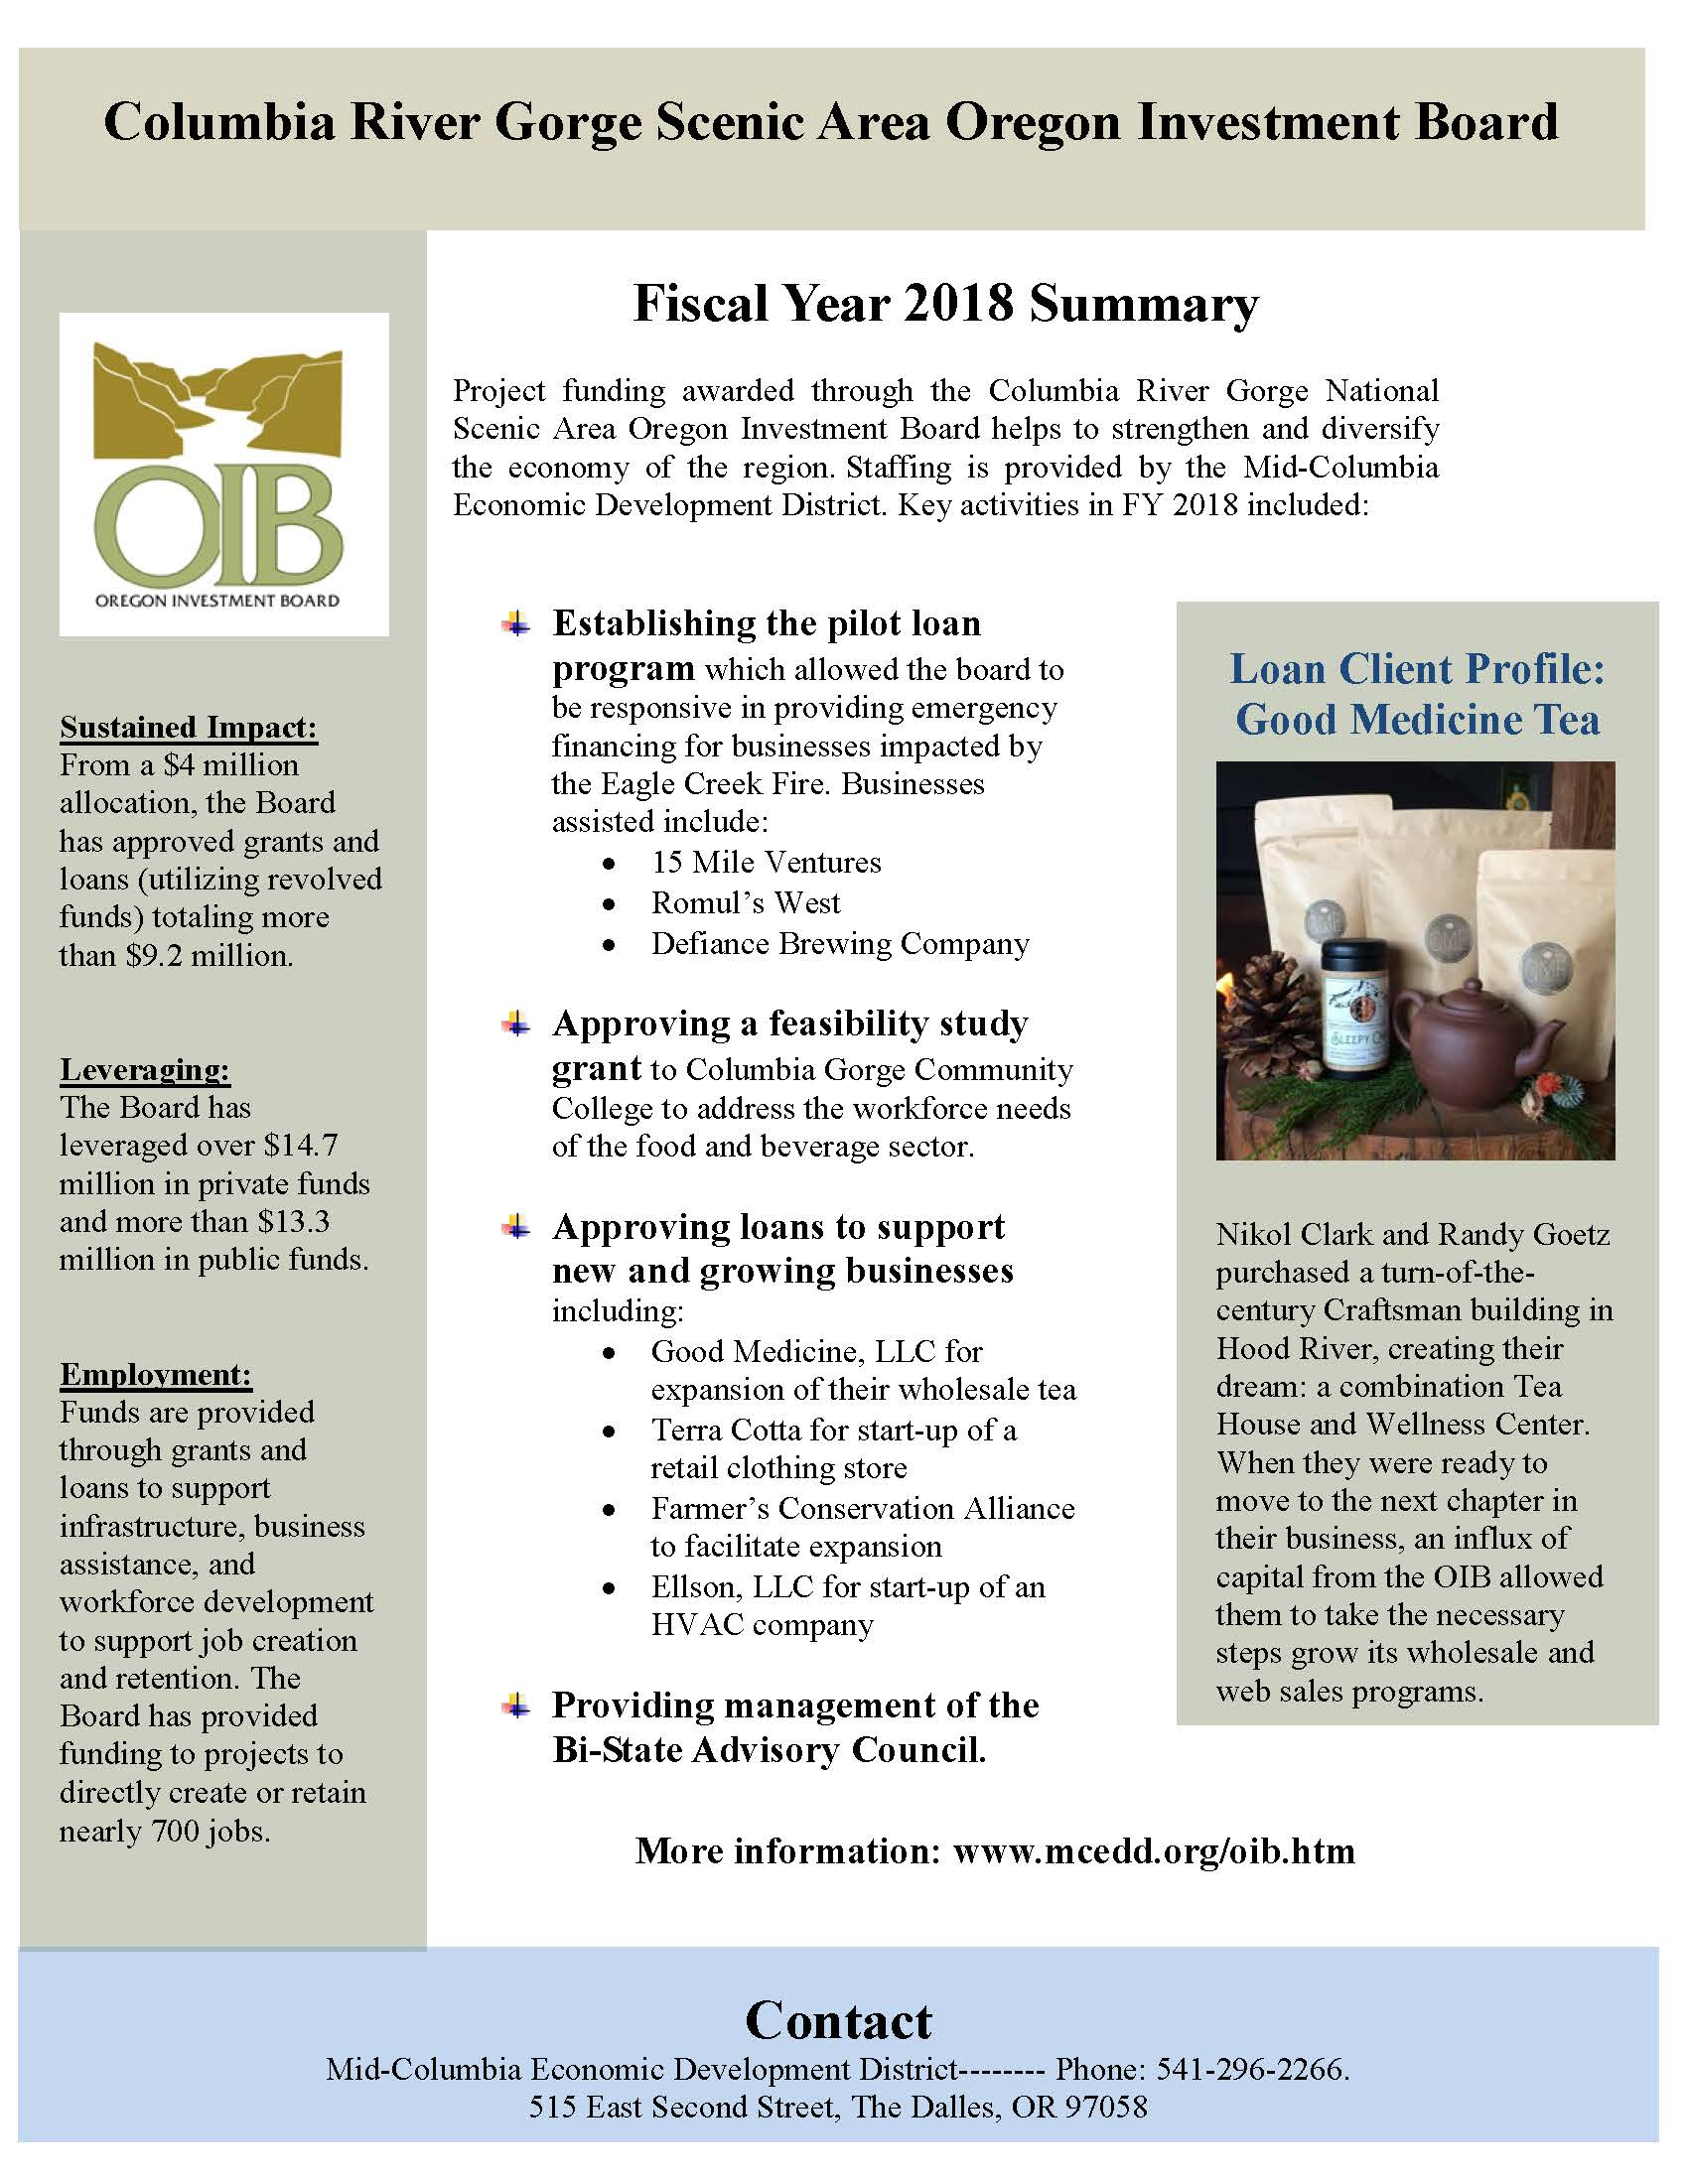 Overview of the annual report for the Oregon Investment Board